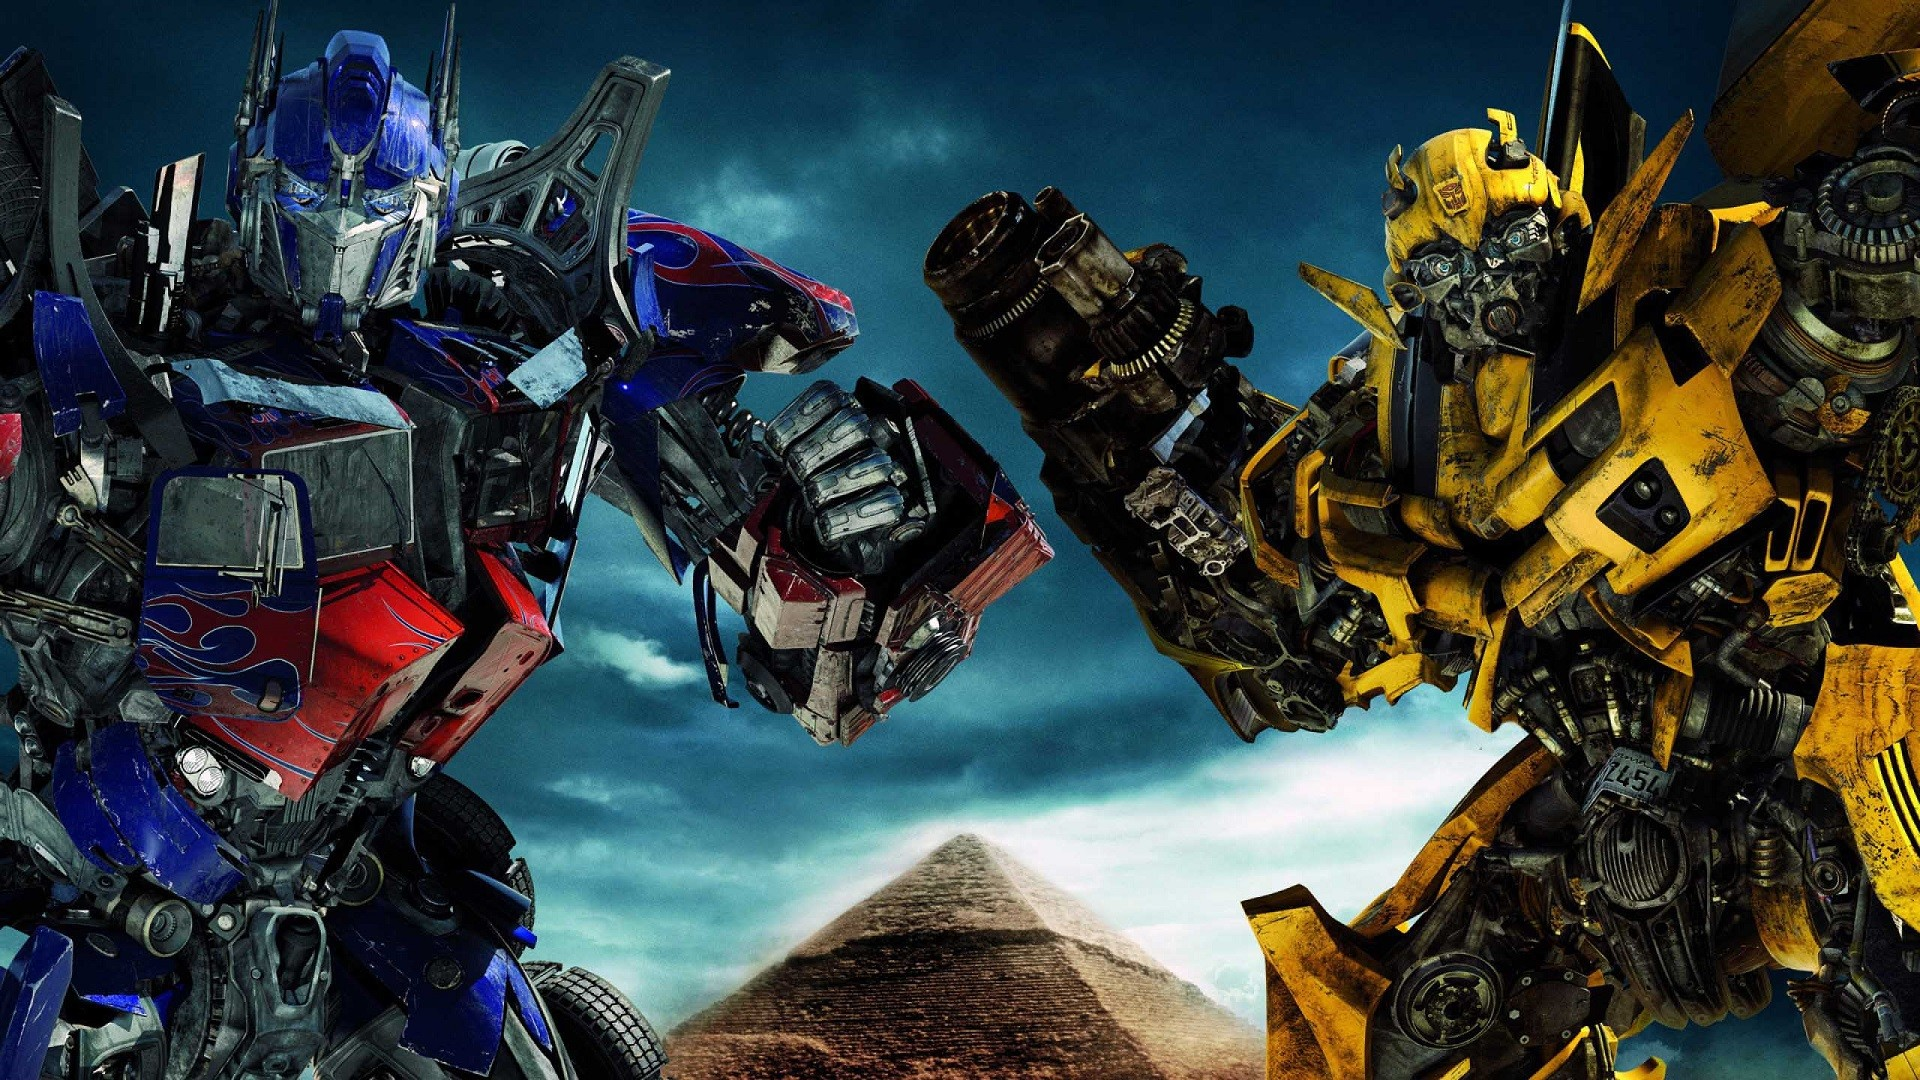 Transformers Fall Of Cybertron Wallpaper Hd Transformers Cybertron Wallpaper 80 Images